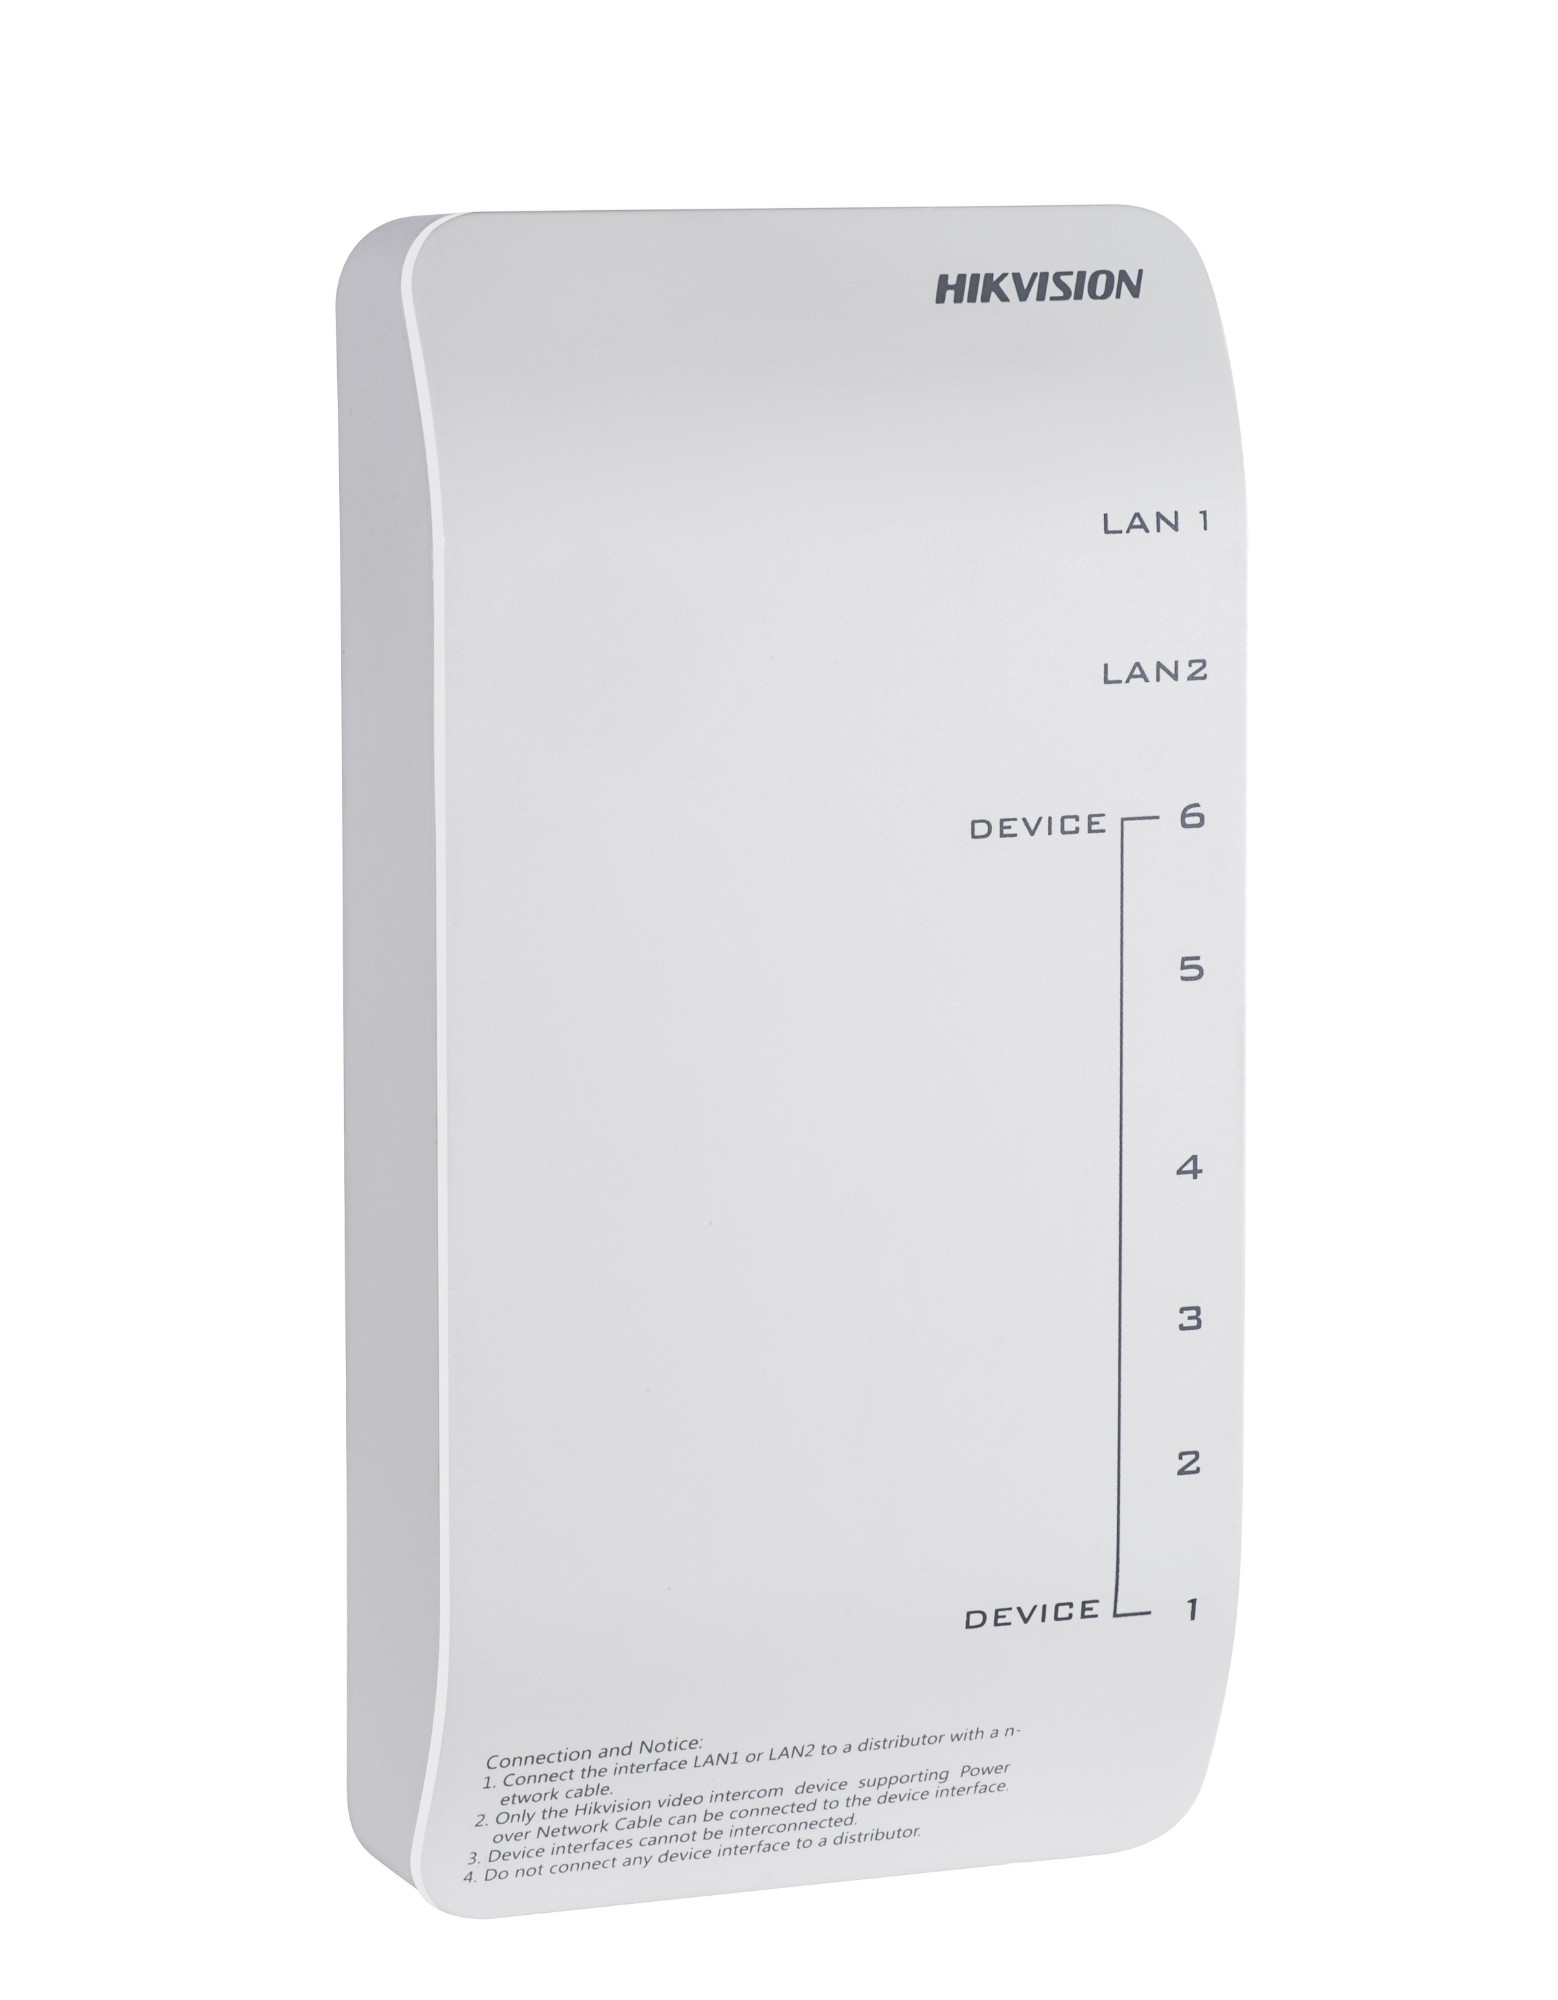 Hikvision Digital Technology 8 RJ-45 interfaces/including 6 adaptive10/100 Mbps LAN interfaces supporting network cable powering